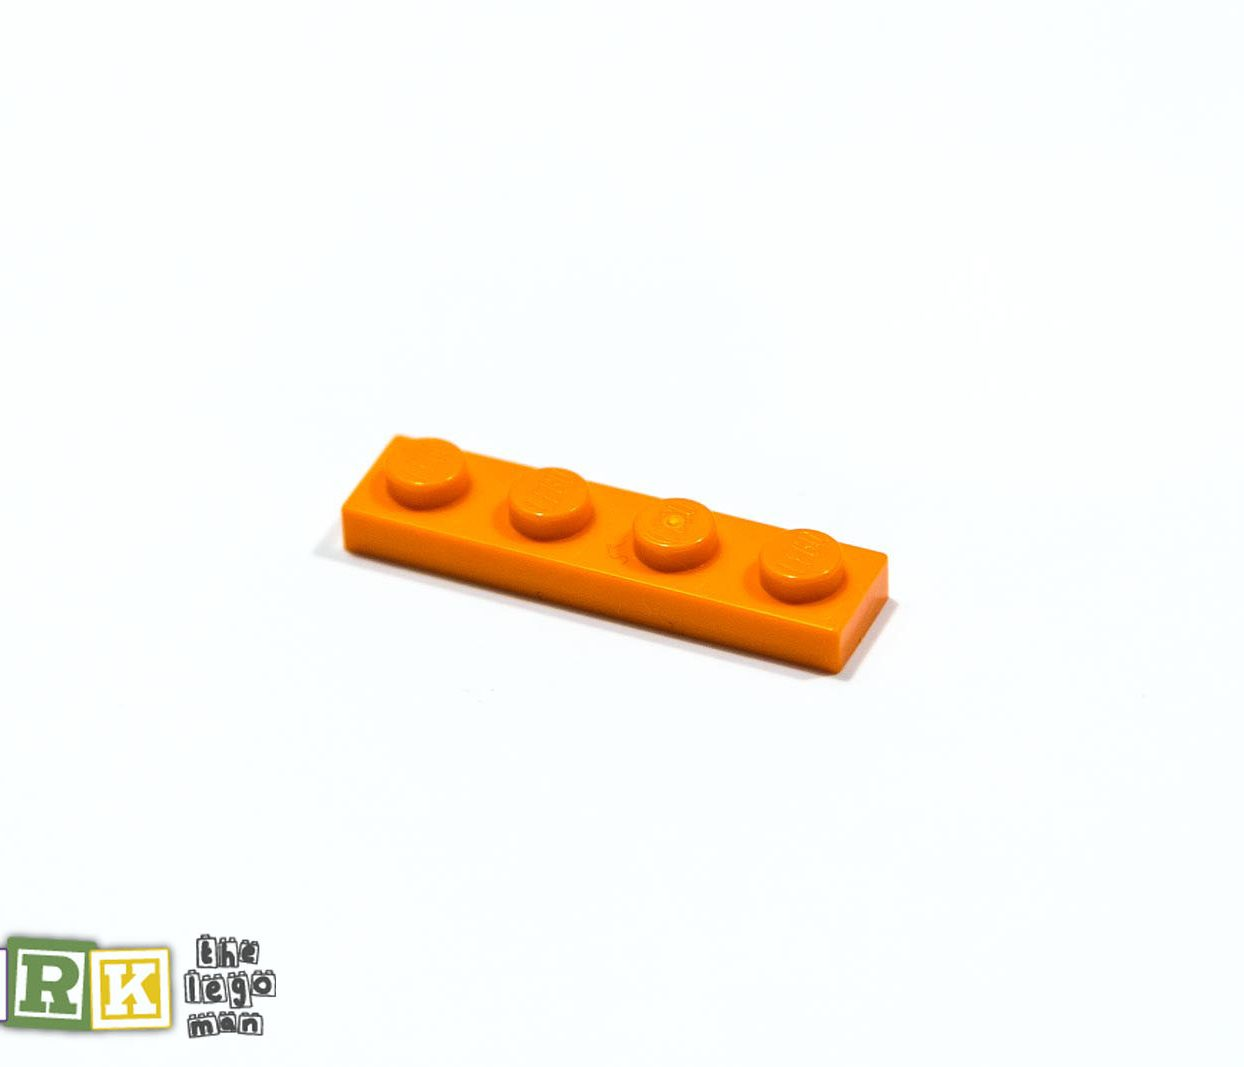 NEW Lego 4118782 3710 1x Bright Orange 1x4 Plate